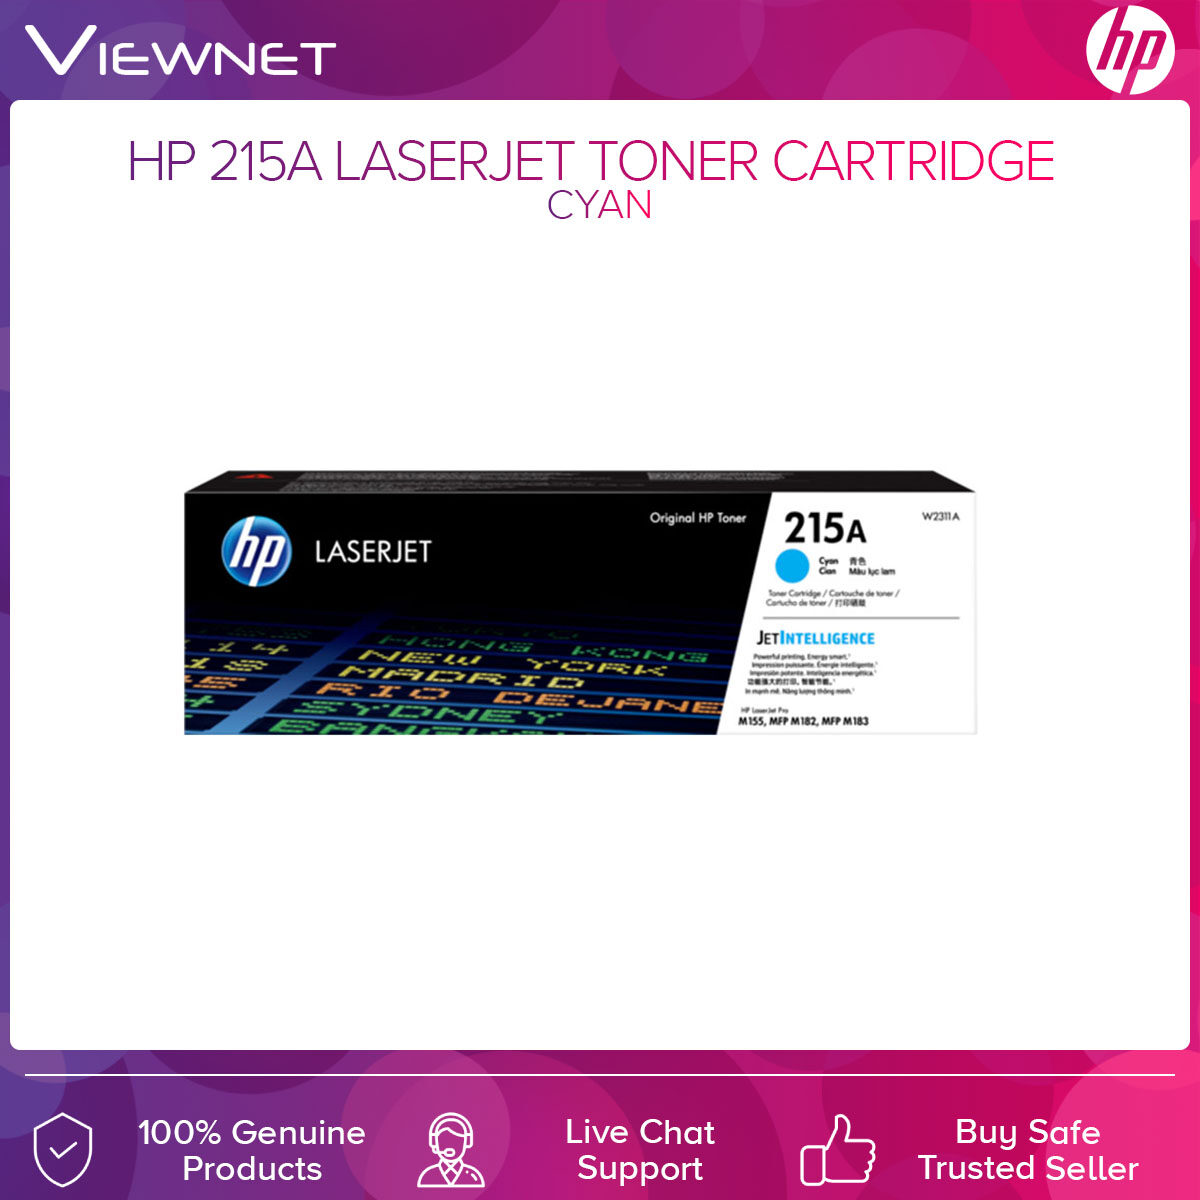 HP 215A Original LaserJet Toner Cartridge Cyan Magenta Yellow Black